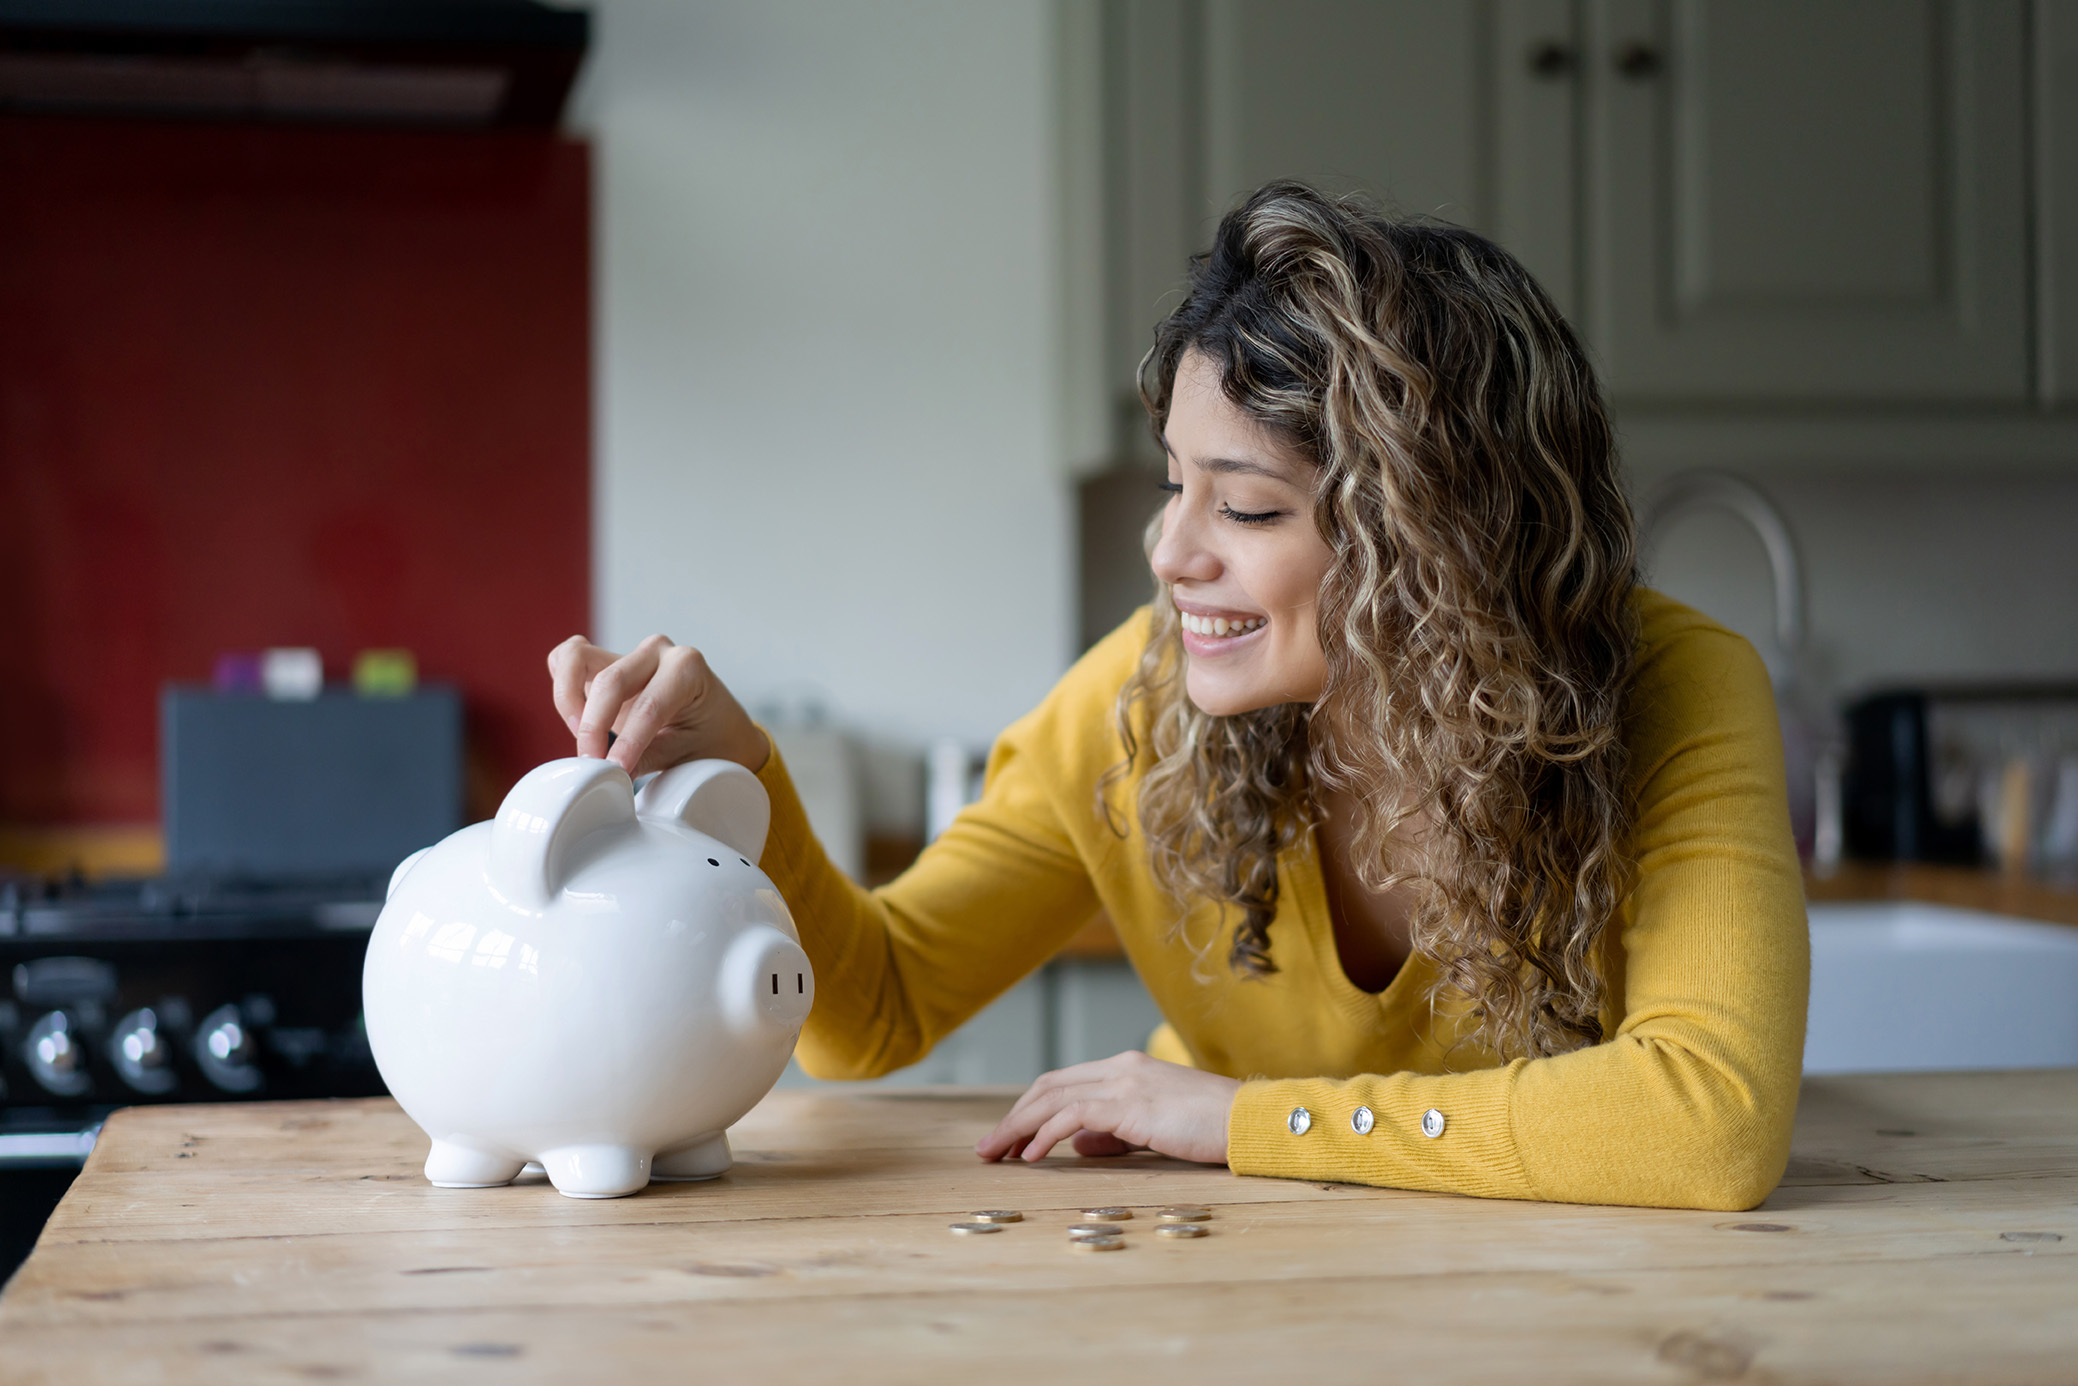 Cheerful young woman with curly hair at home saving coins into her piggybank smiling